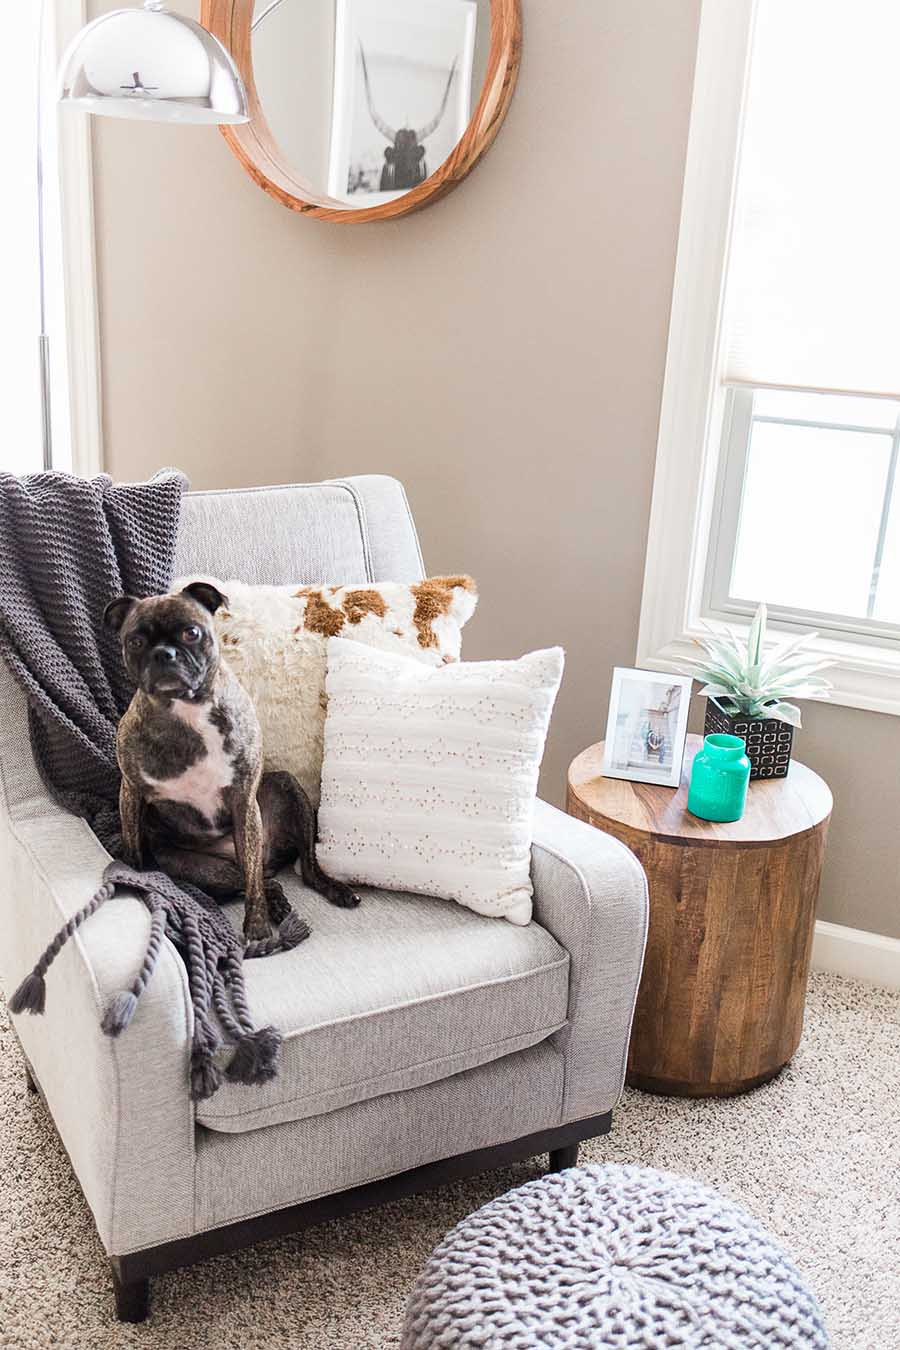 Before & After With Havenly: A Stunning Living Room Makeover